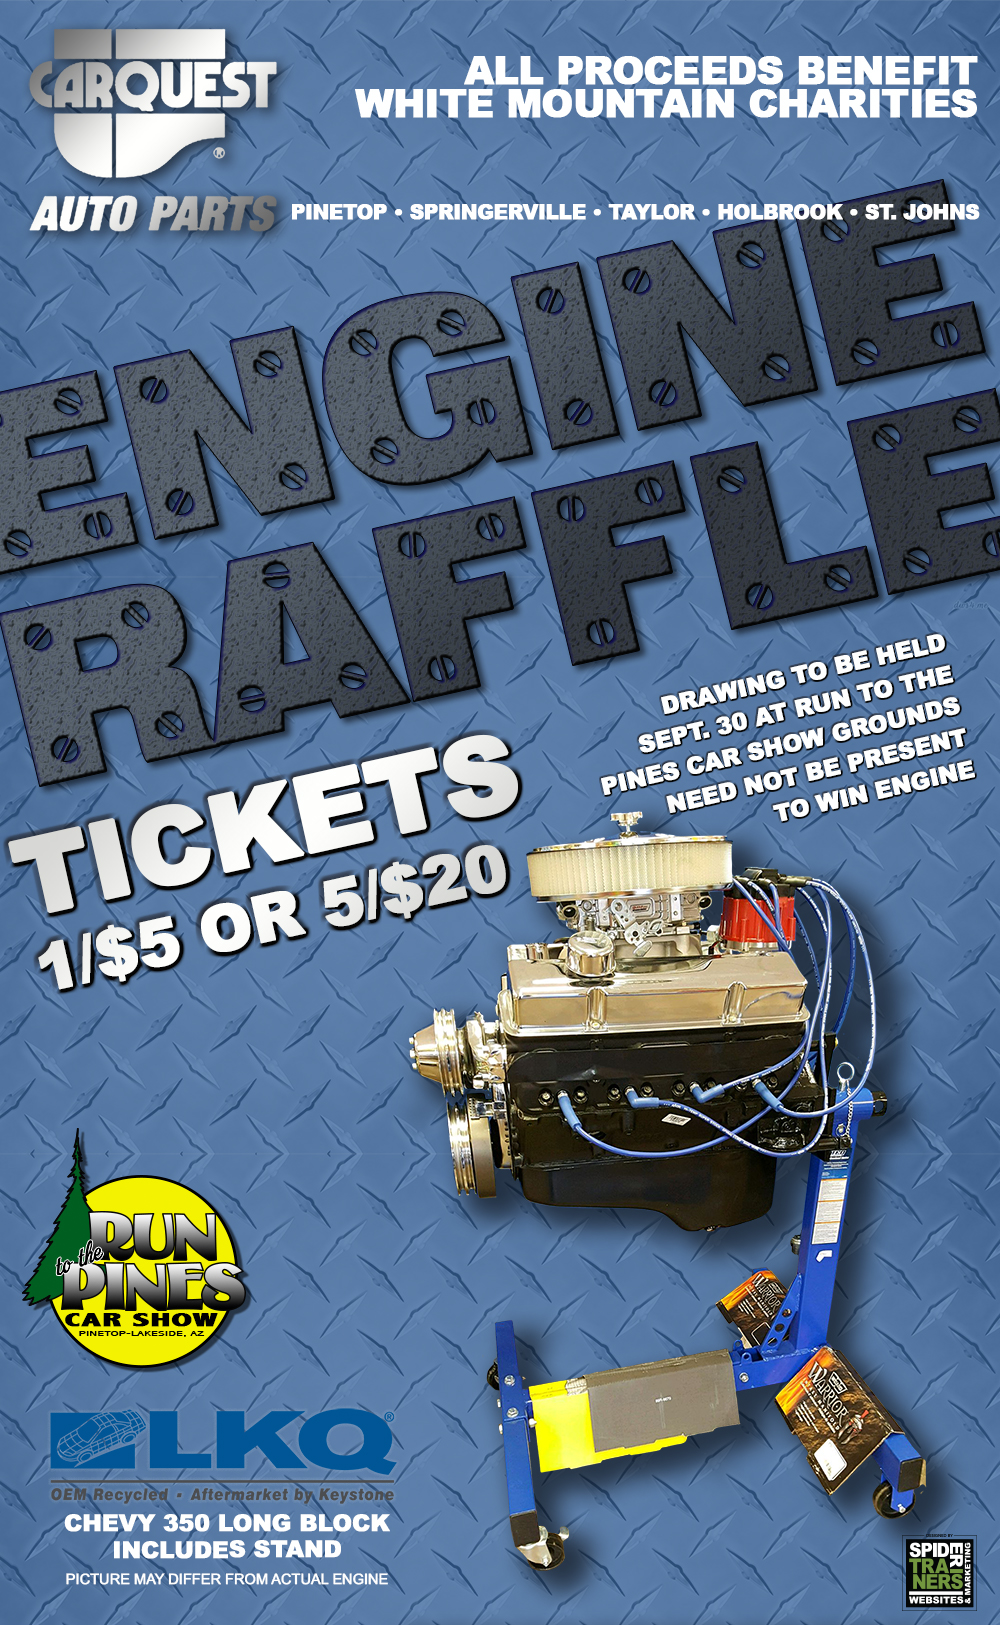 Carquest of the White Mountains Engine Raffle (image)